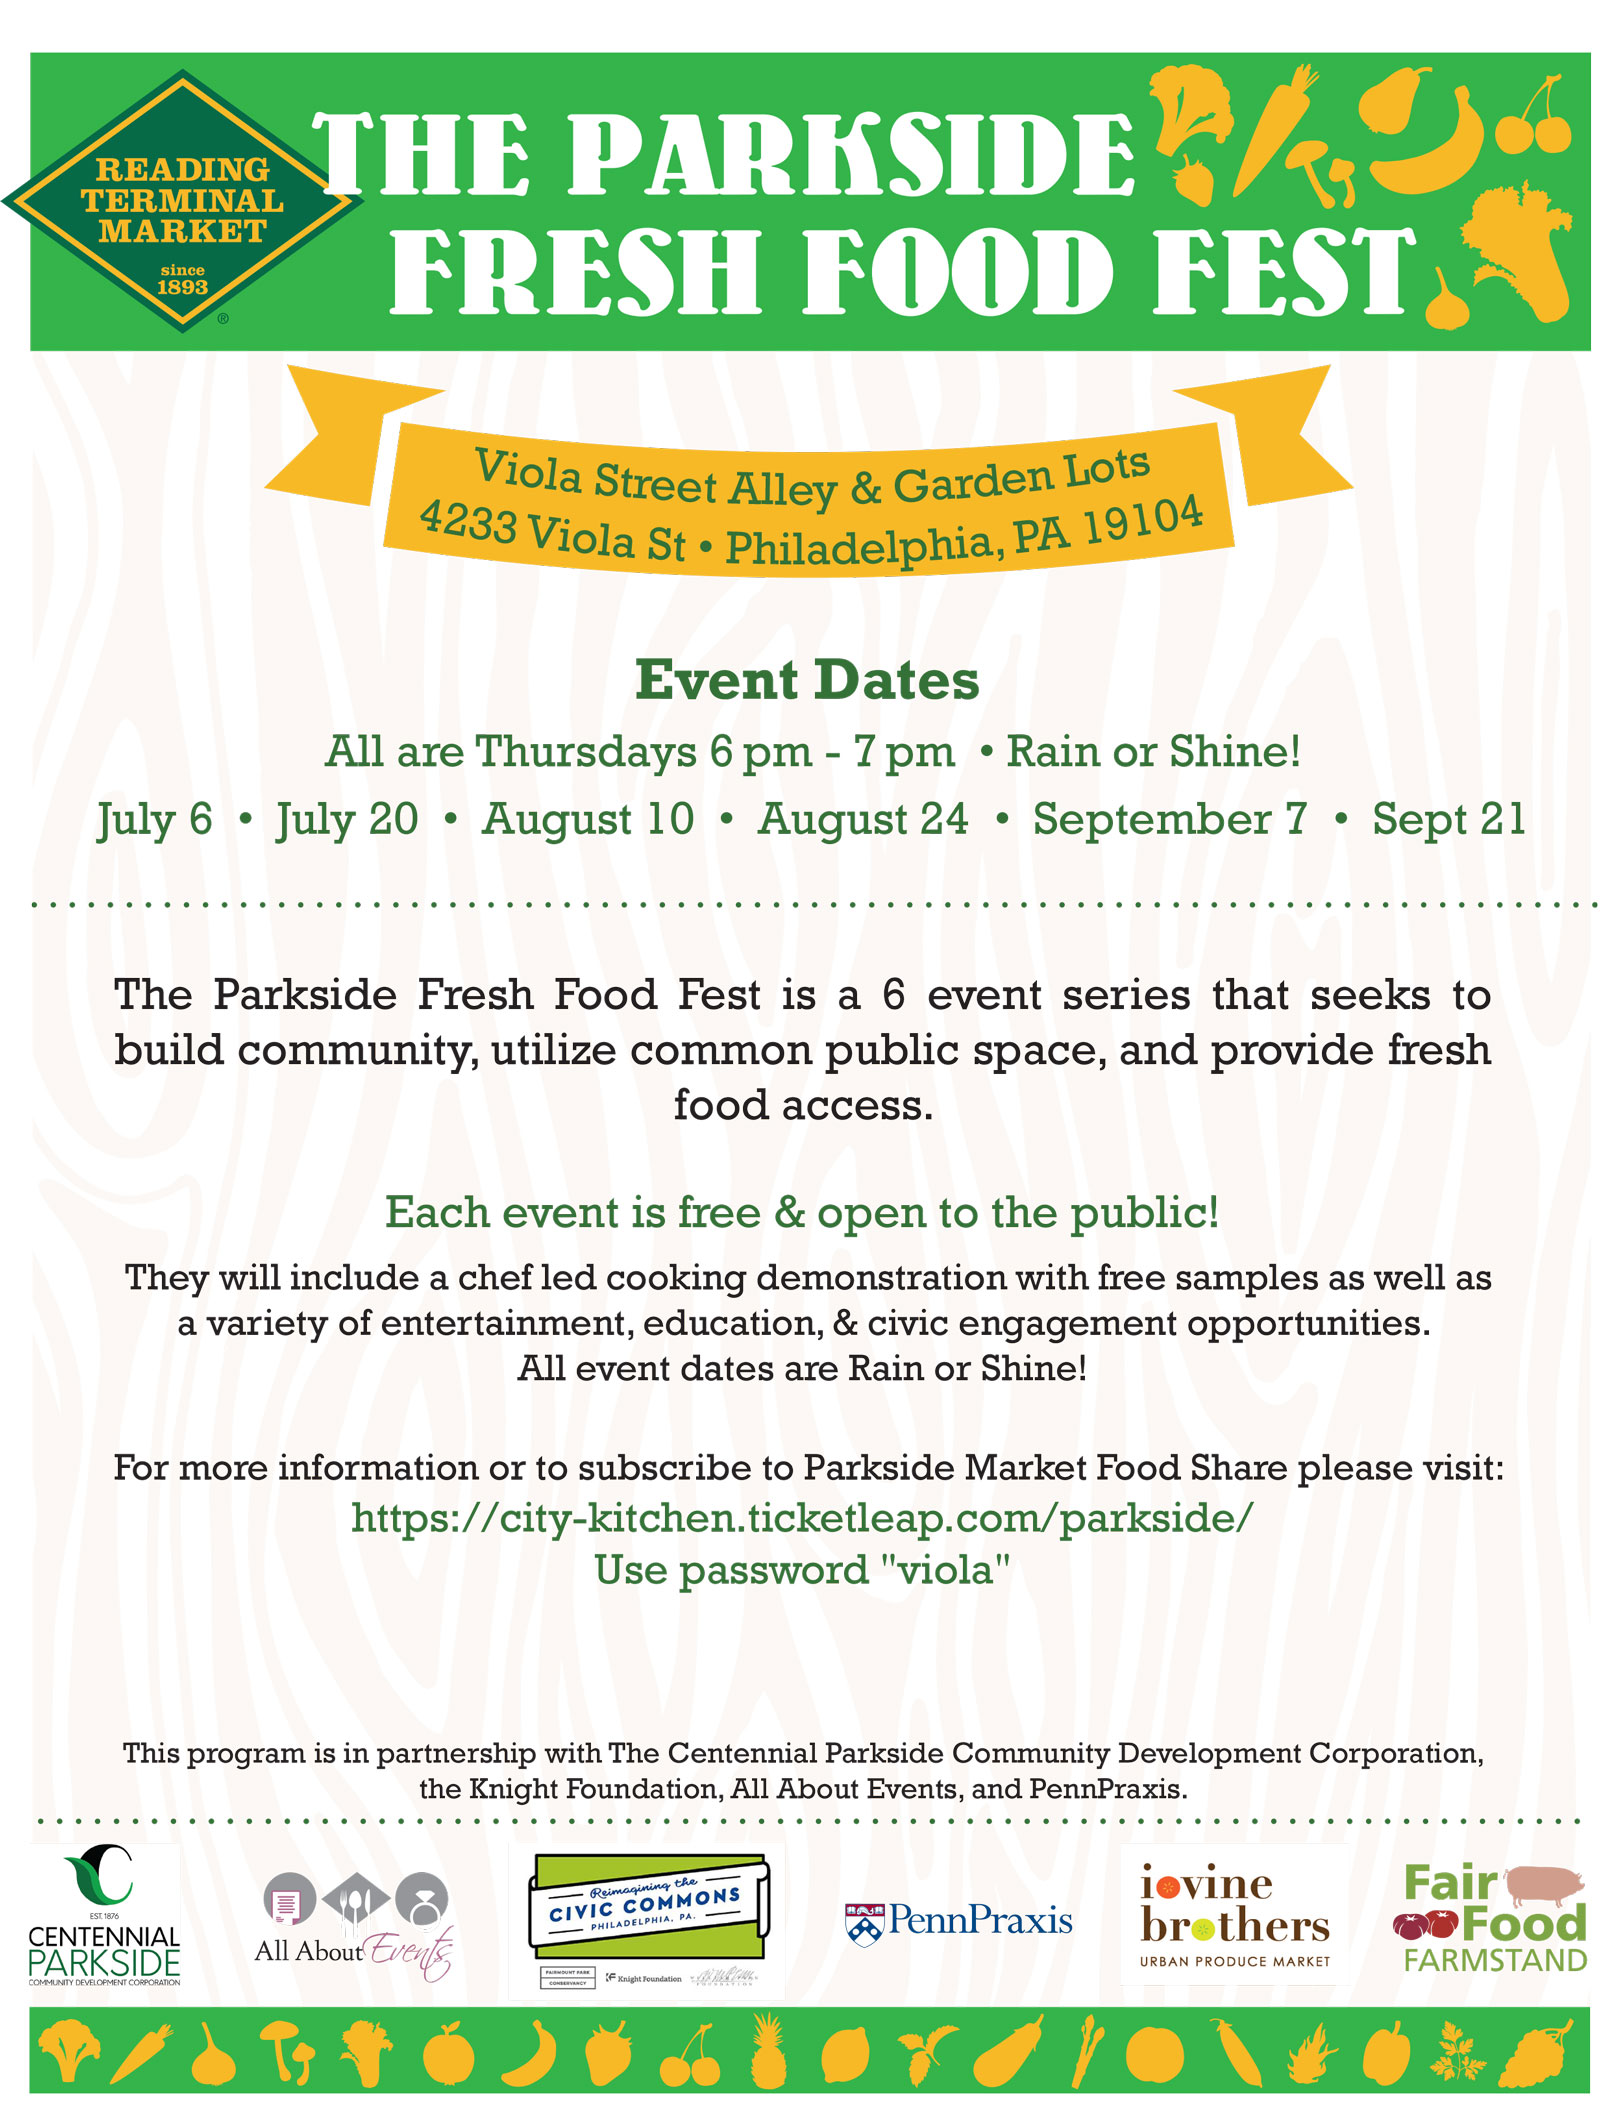 Parkside-Fresh-Food-Fest_Flyer